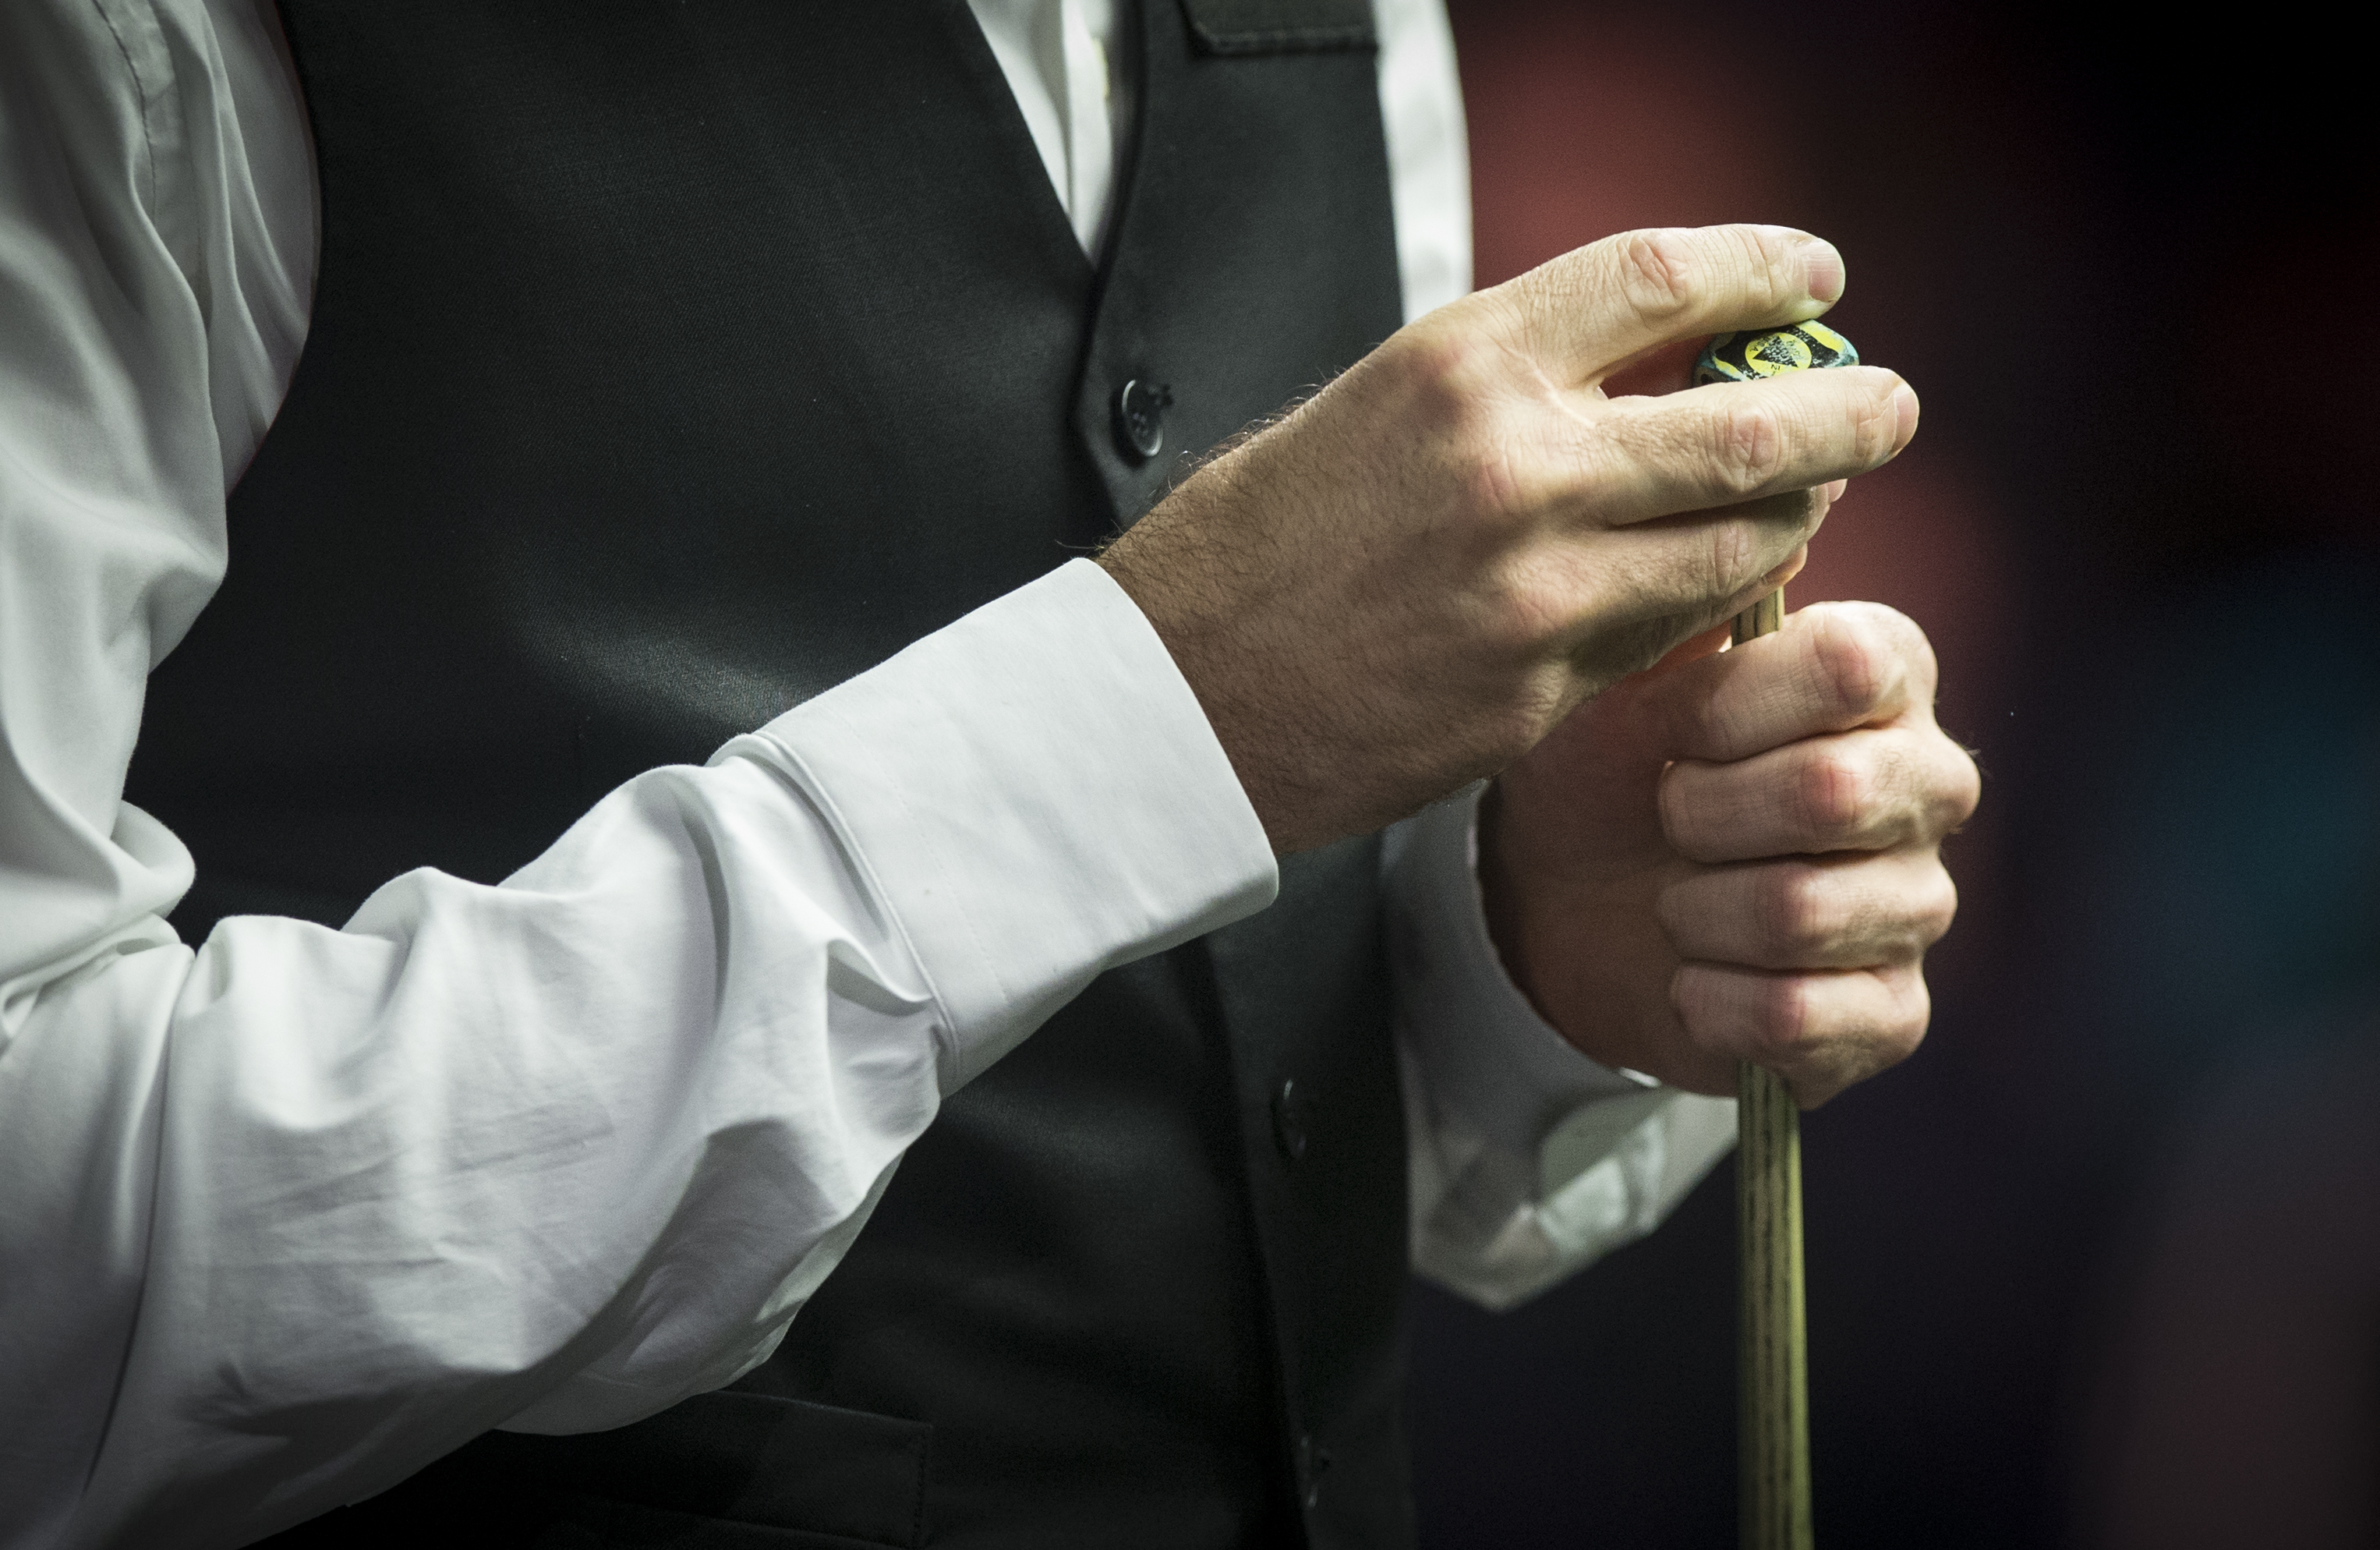 A snooker player chalks their cue